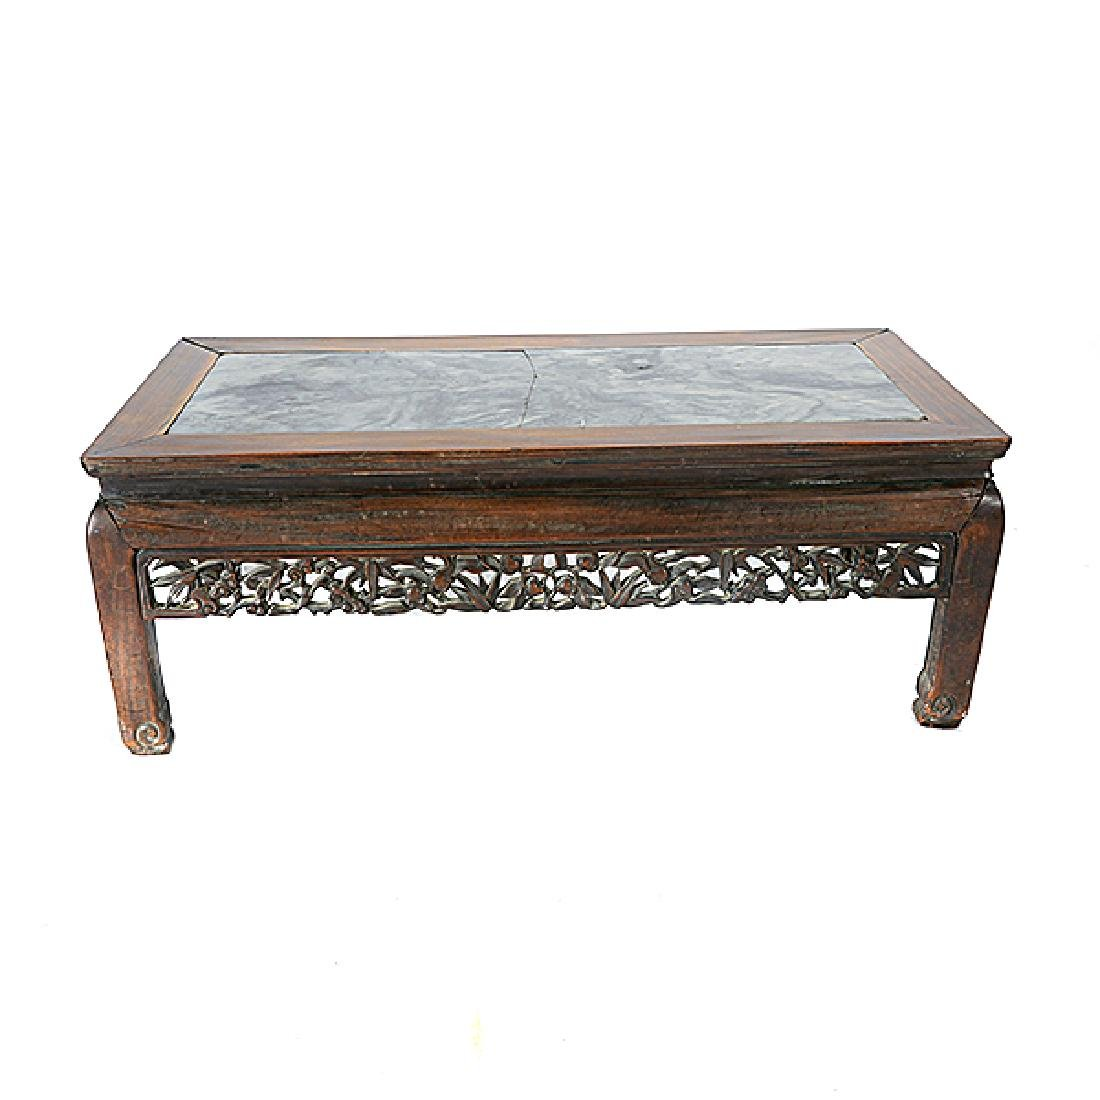 A Rosewood Low Table, Late 19th/Early 20th Century - 4